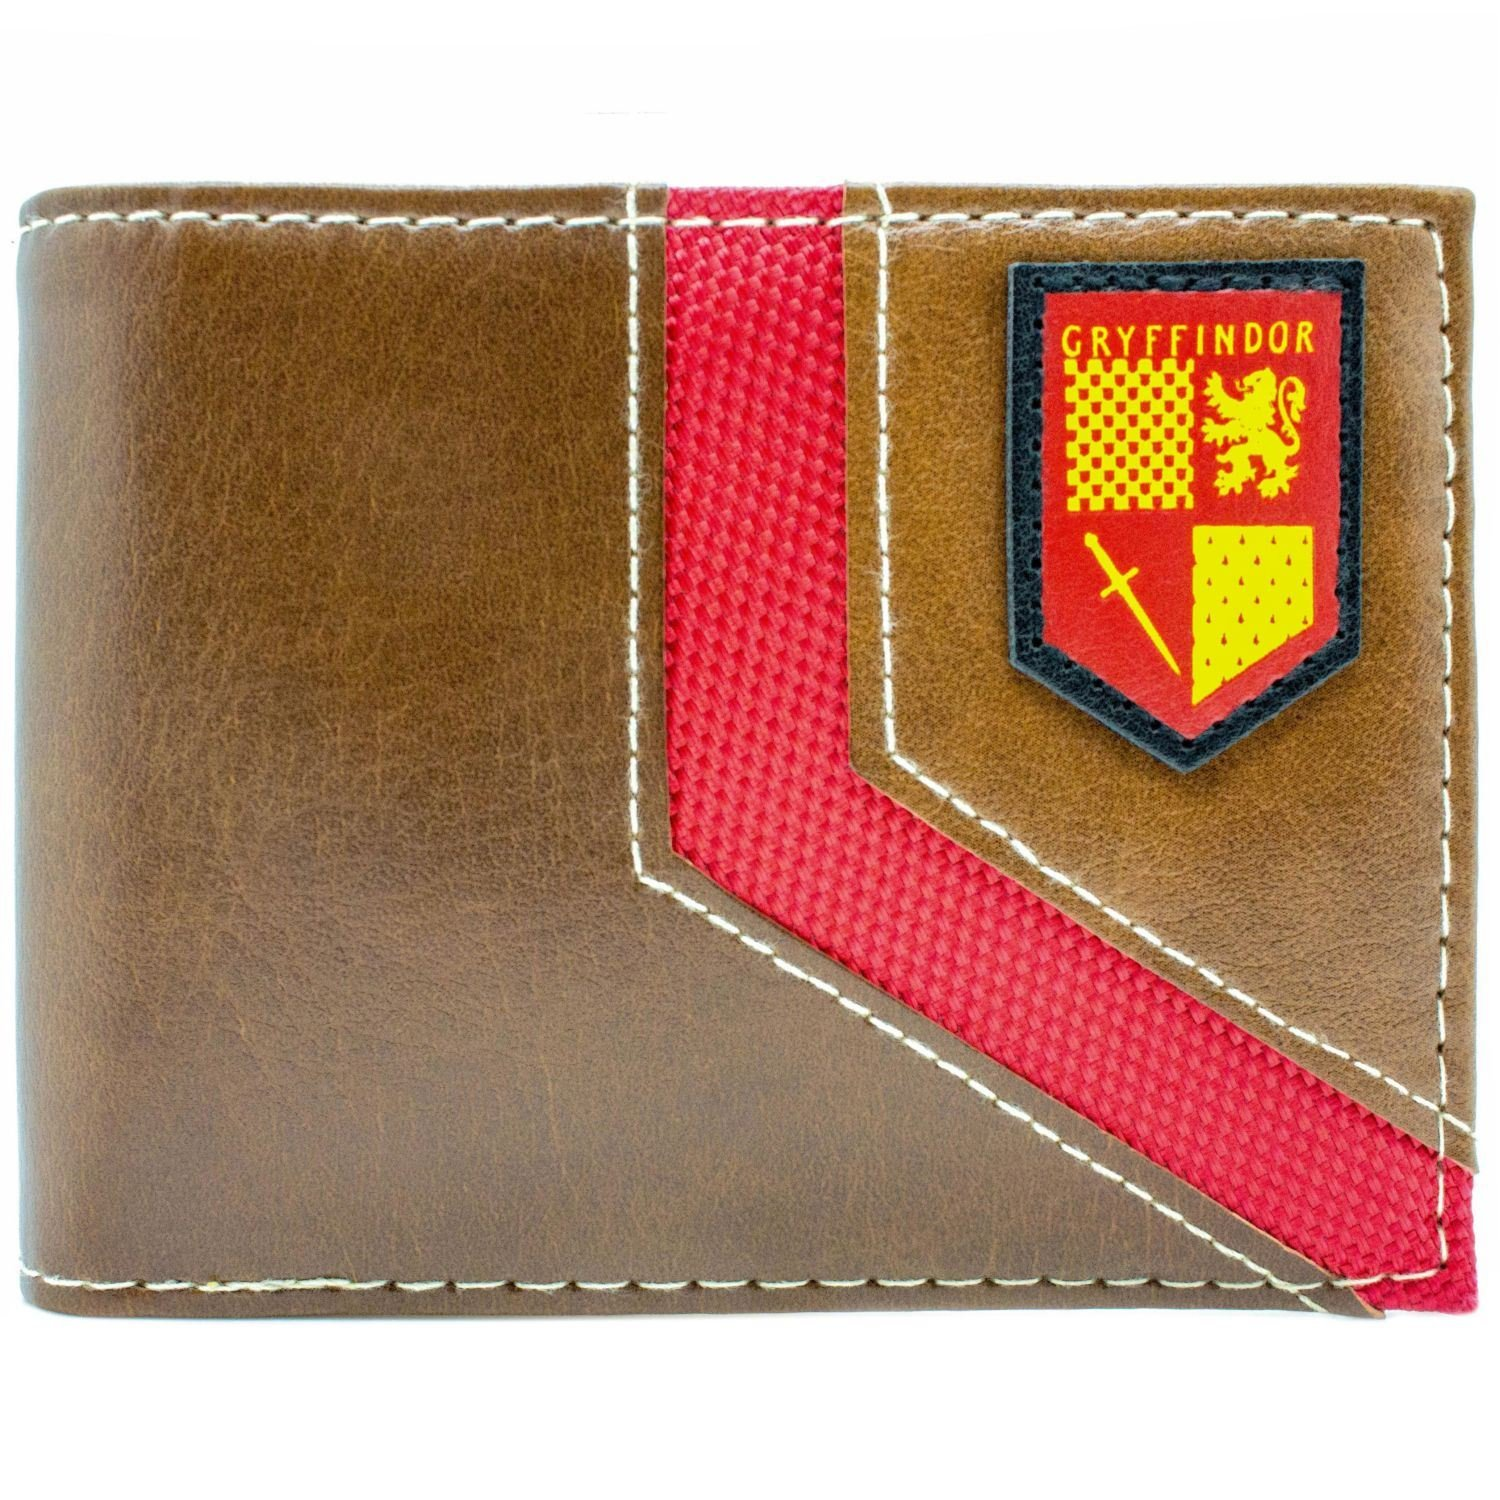 Cartera de Warner Harry Potter Escudo de Gryffindor marrón 28832